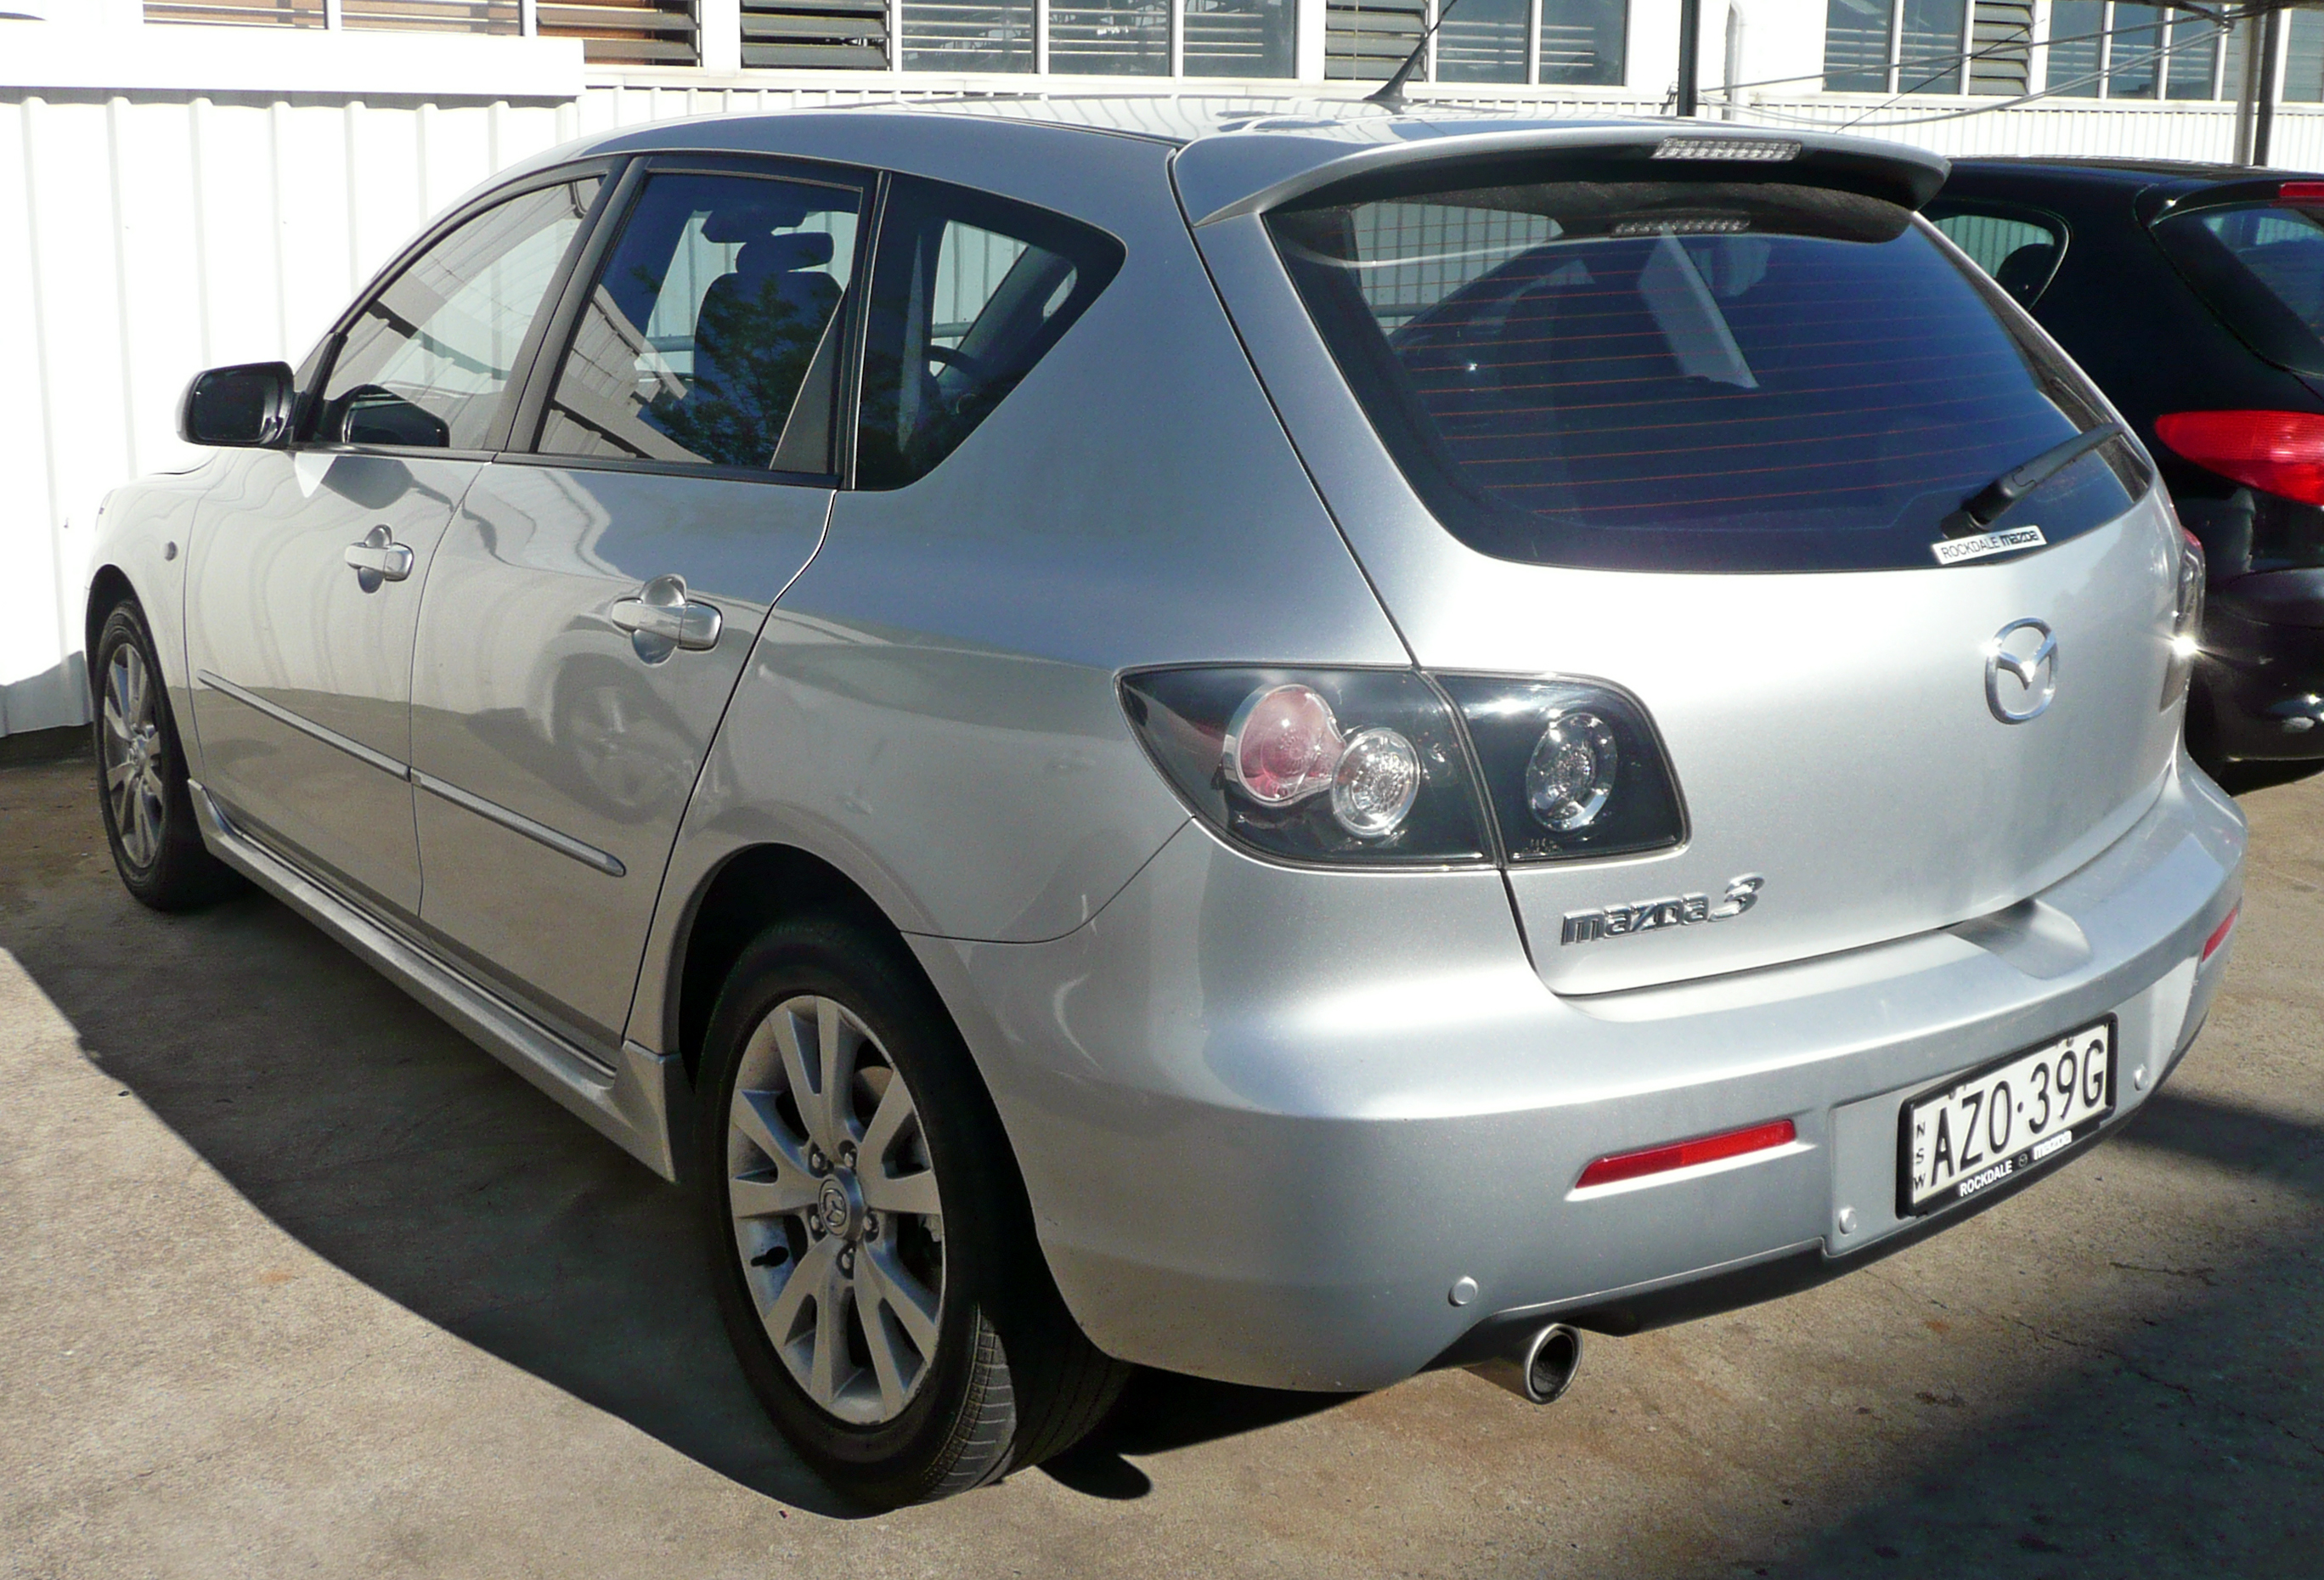 File 2006 2008 Mazda 3 Bk Series 2 Maxx Sport Hatchback 02 Jpg Wikimedia Commons